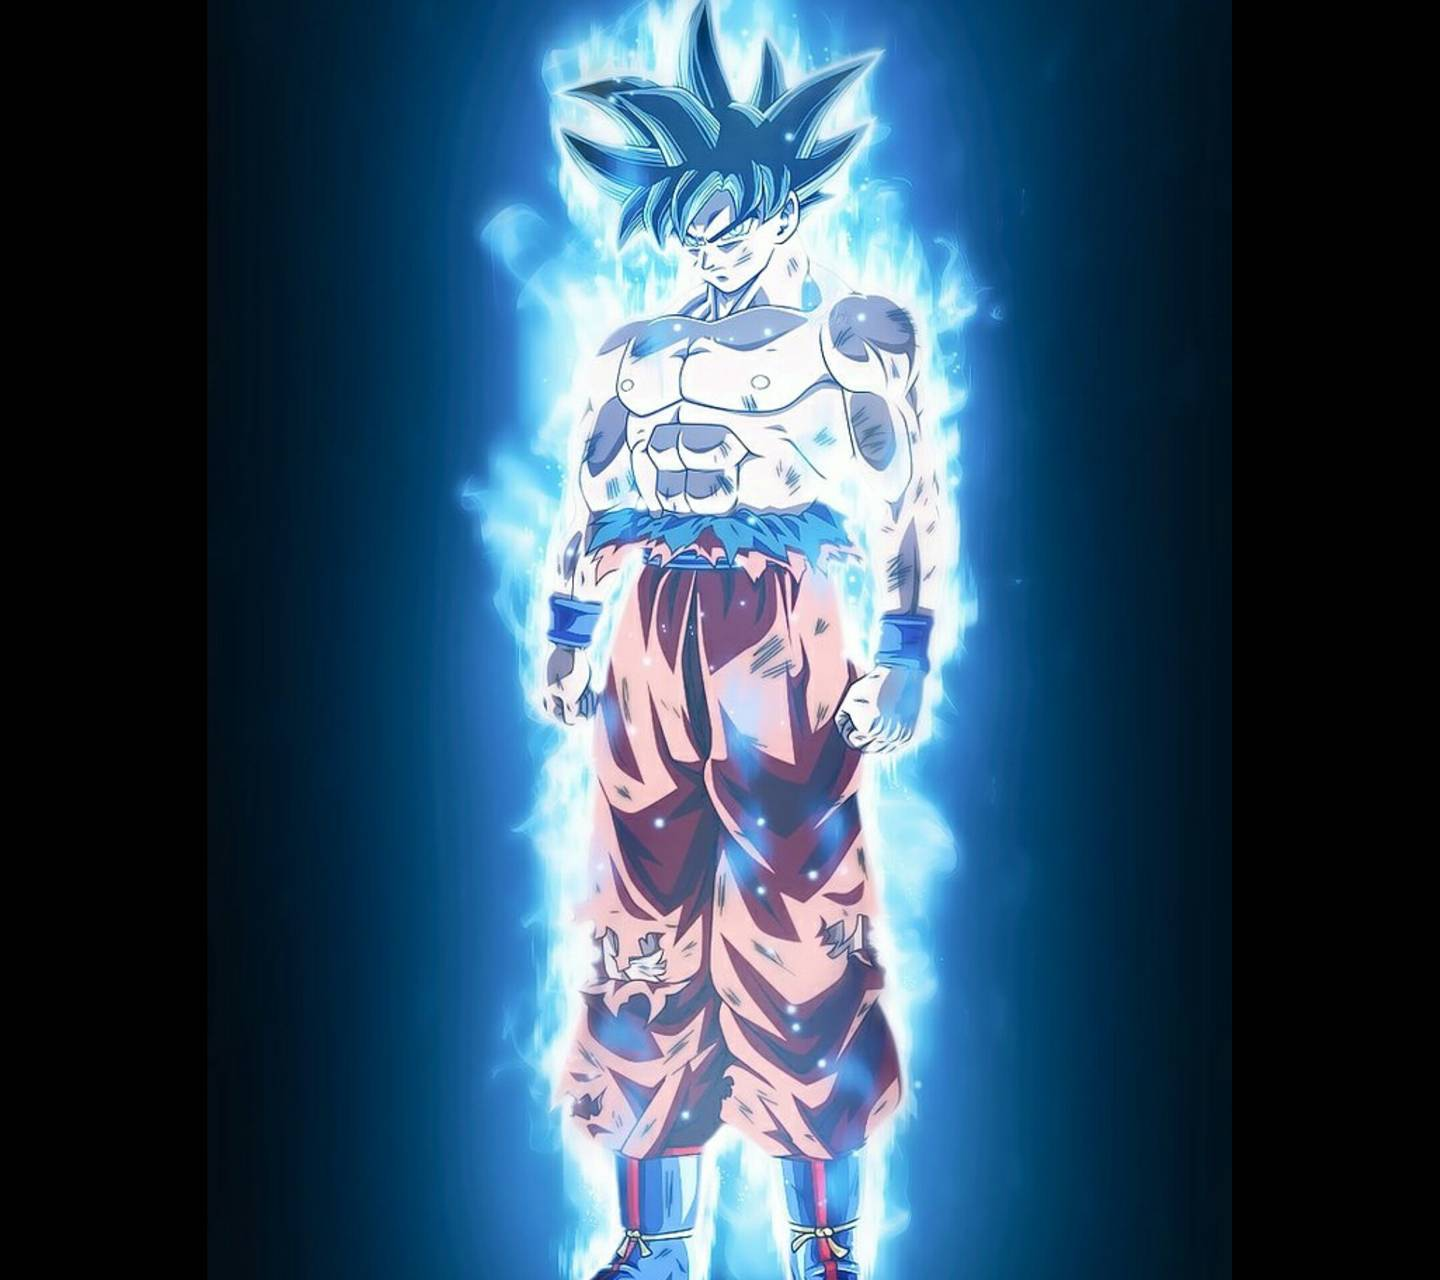 Ultra Instinct Dragon Ball Super Wallpaper: Wallpaper Hd Goku Ultra Instinct